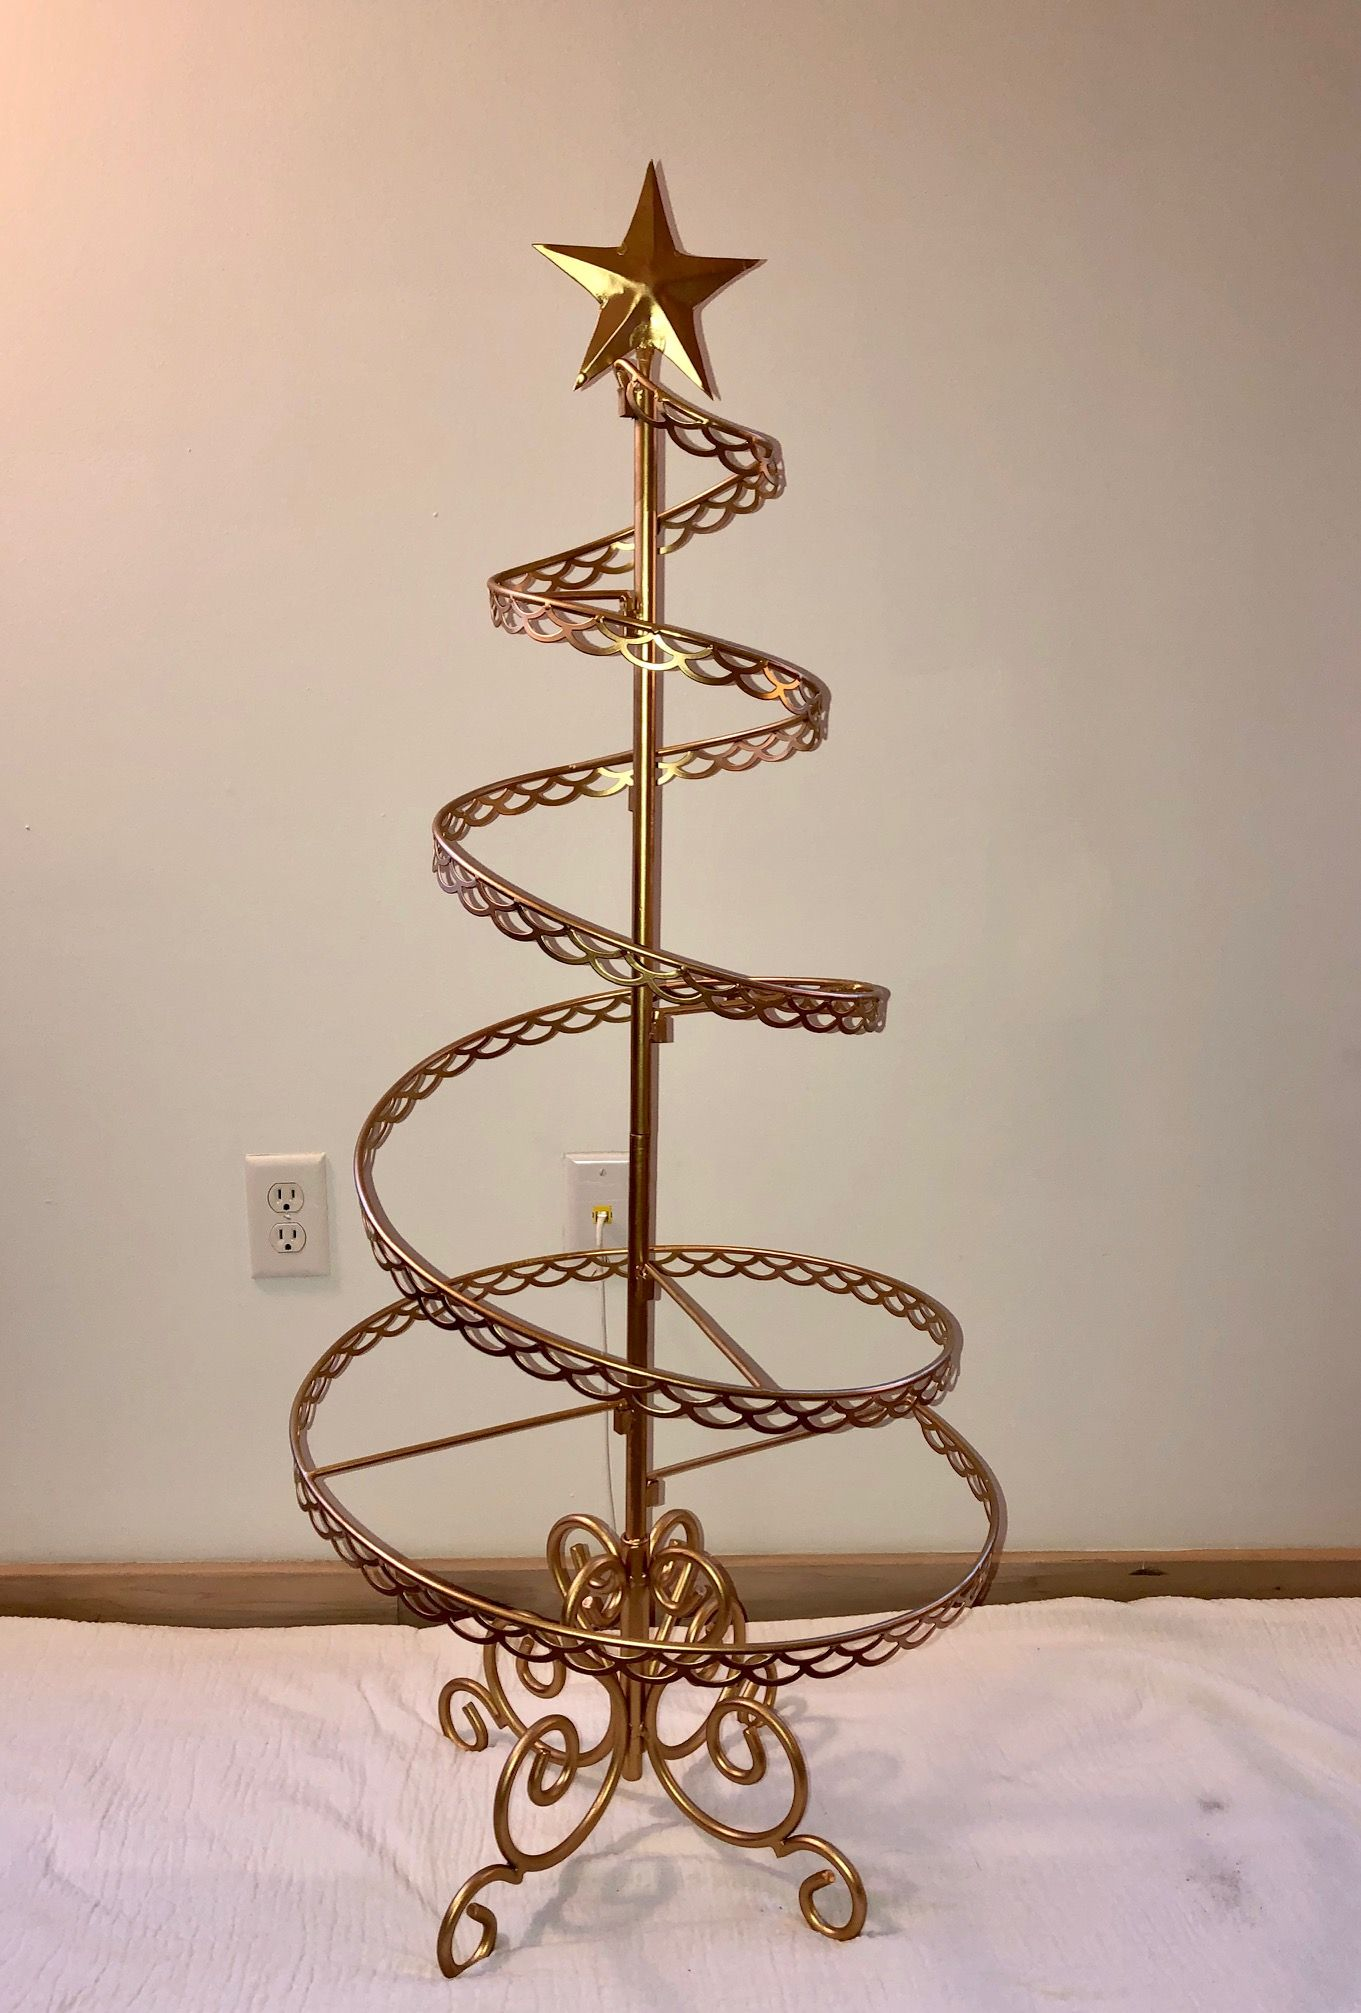 Ornament Trees Spiral Wire Ornament Tree 4 Foot Ornament Display Trees Ornament Tree Display Ornament Display Wire Ornaments